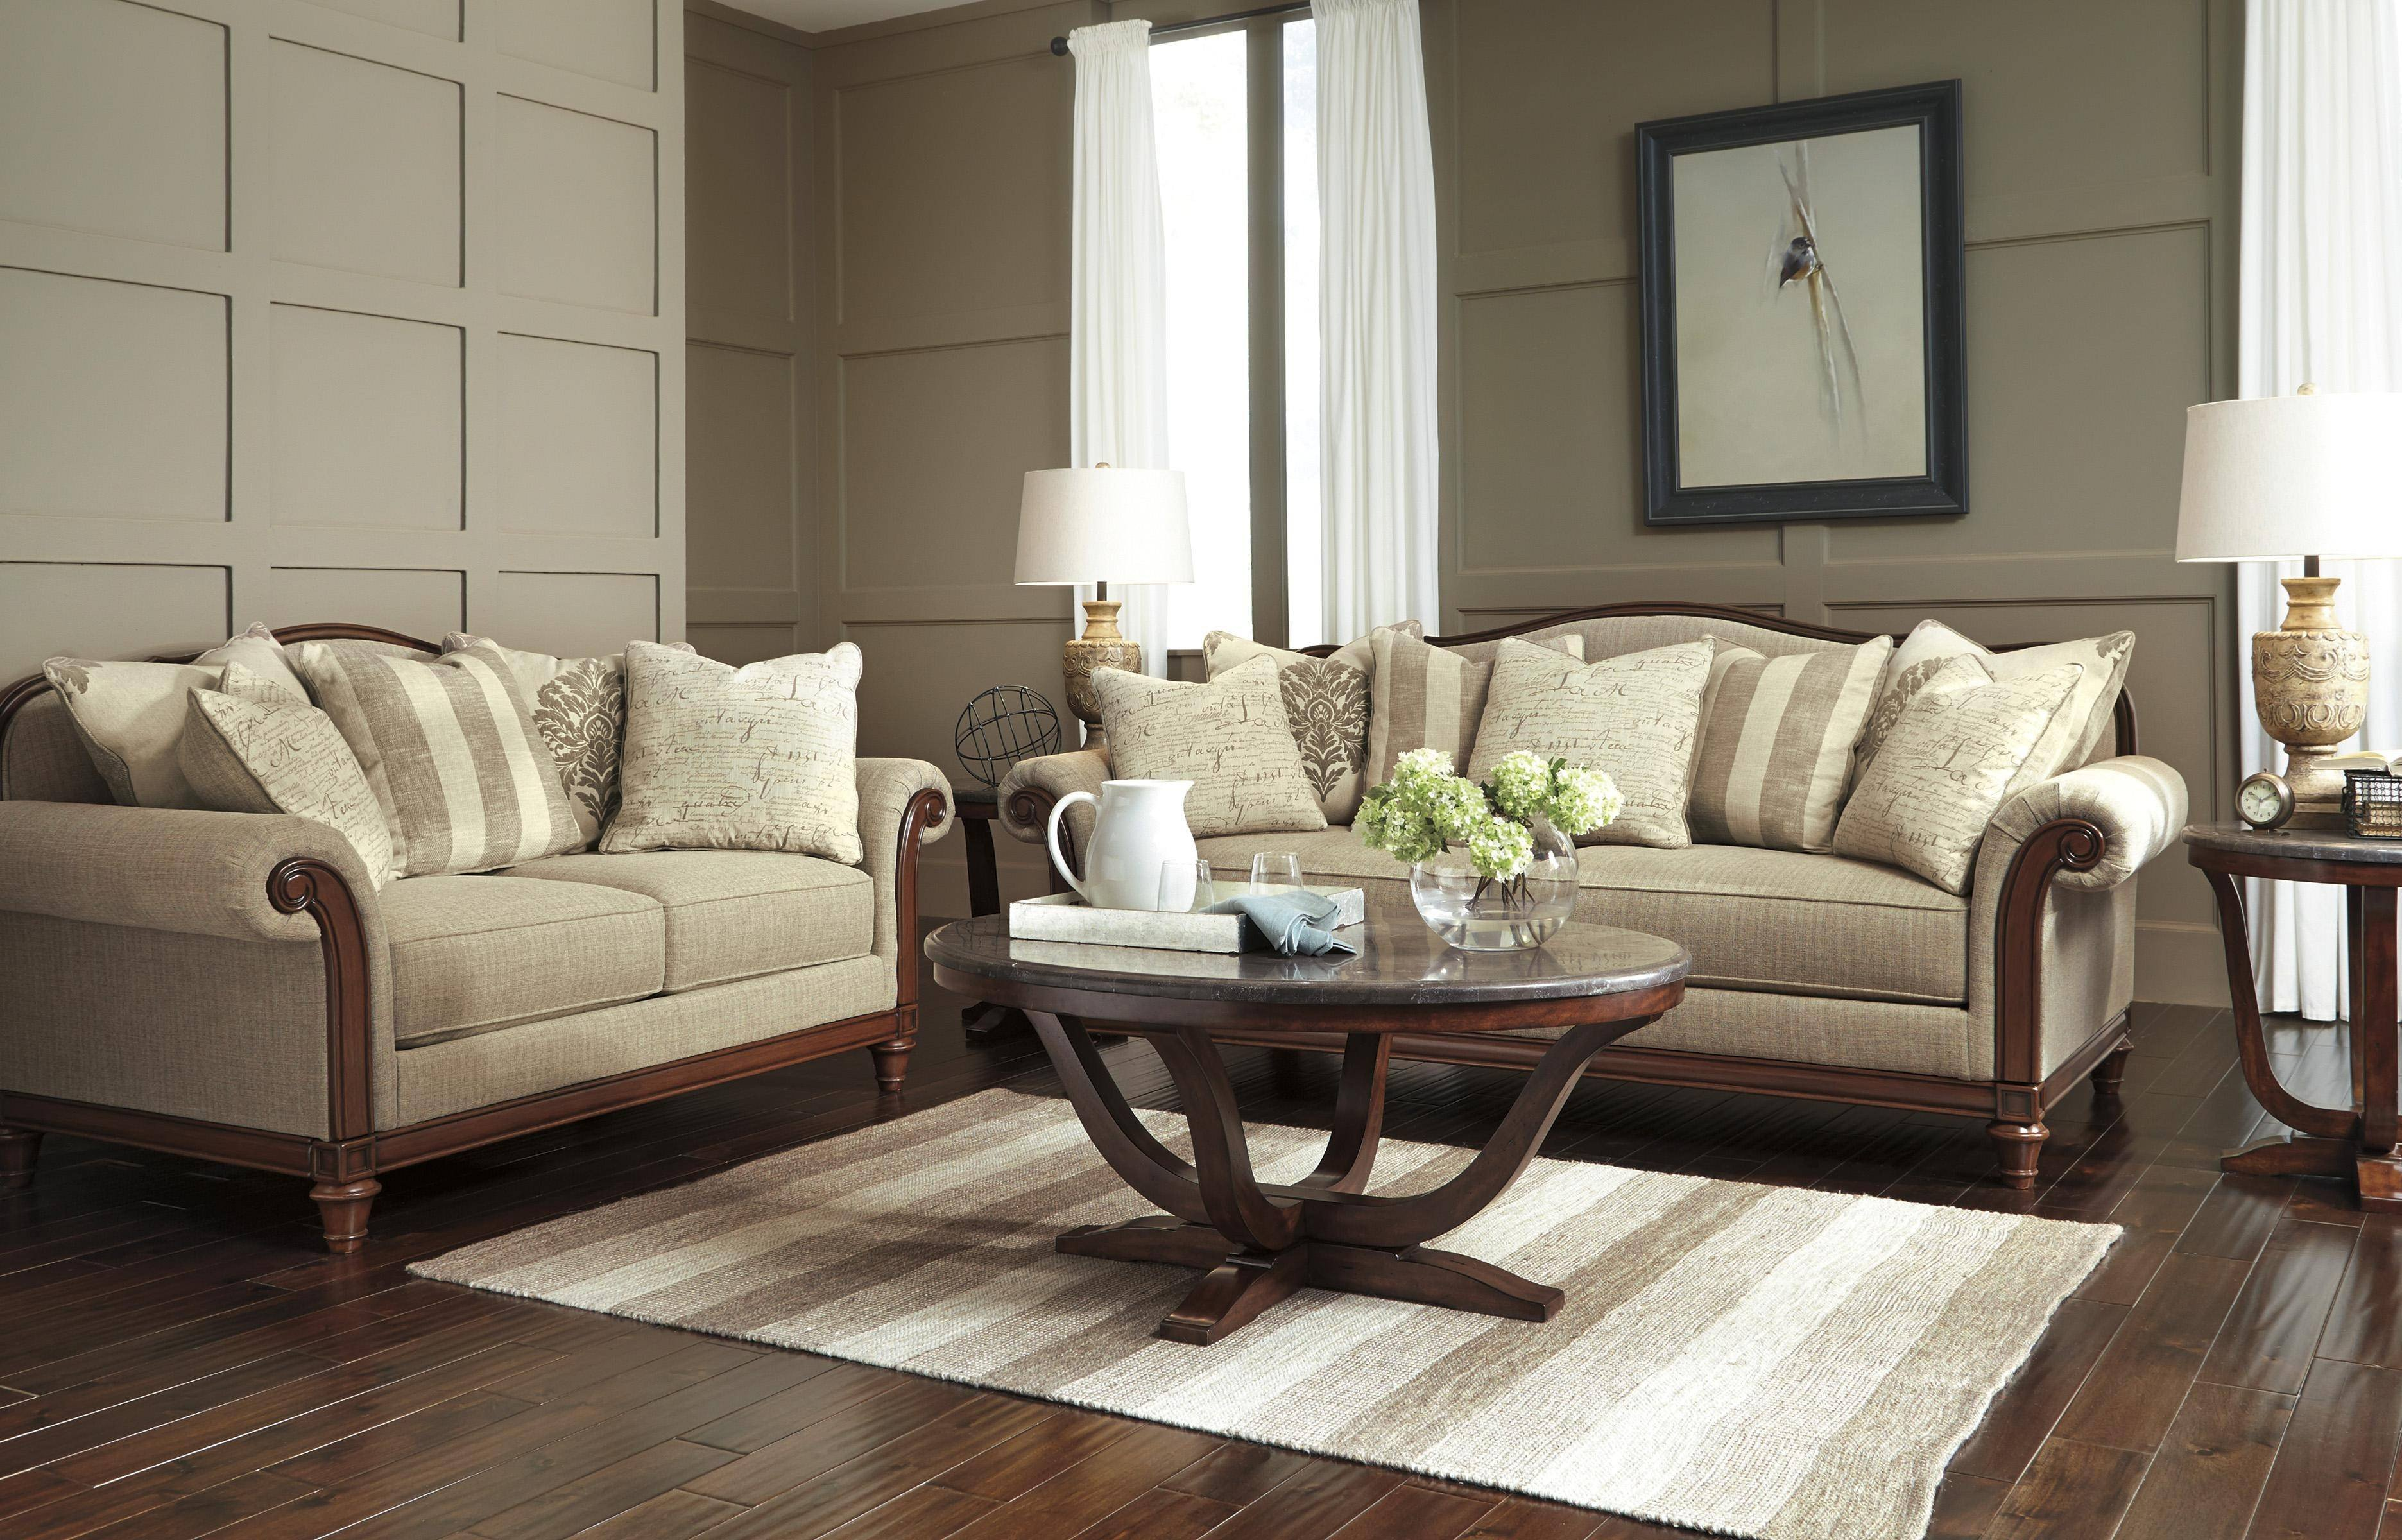 Small Recliners for Bedroom New ashley Berwyn View 2 Piece Living Room Set In Quartz